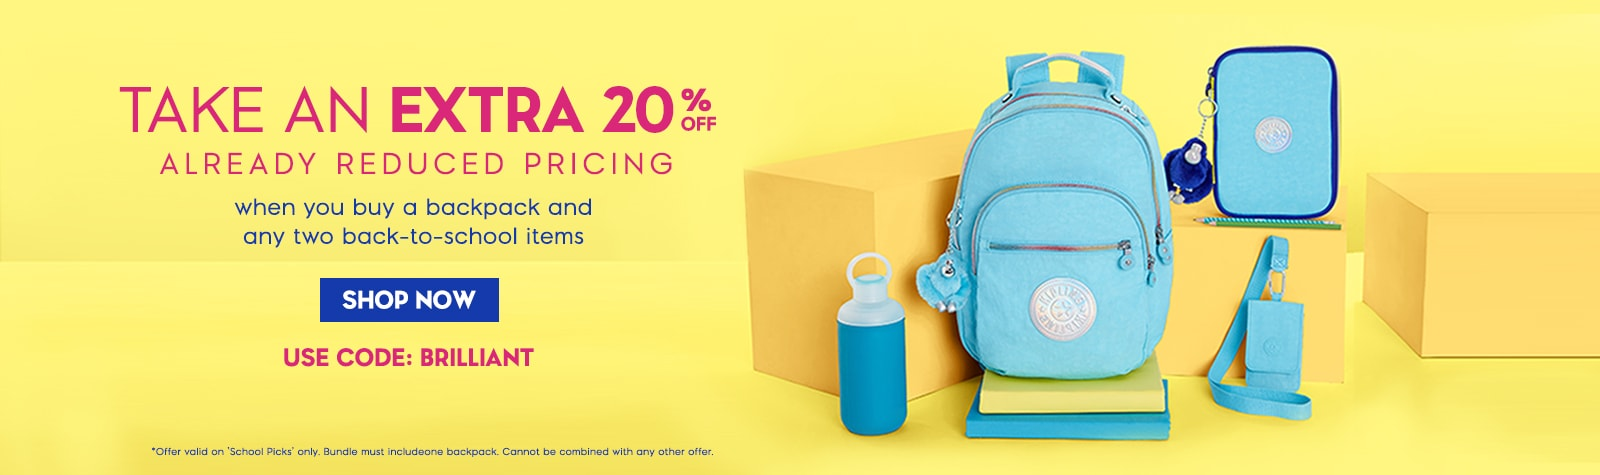 Take An Extra 20% off Already Reduced Pricing